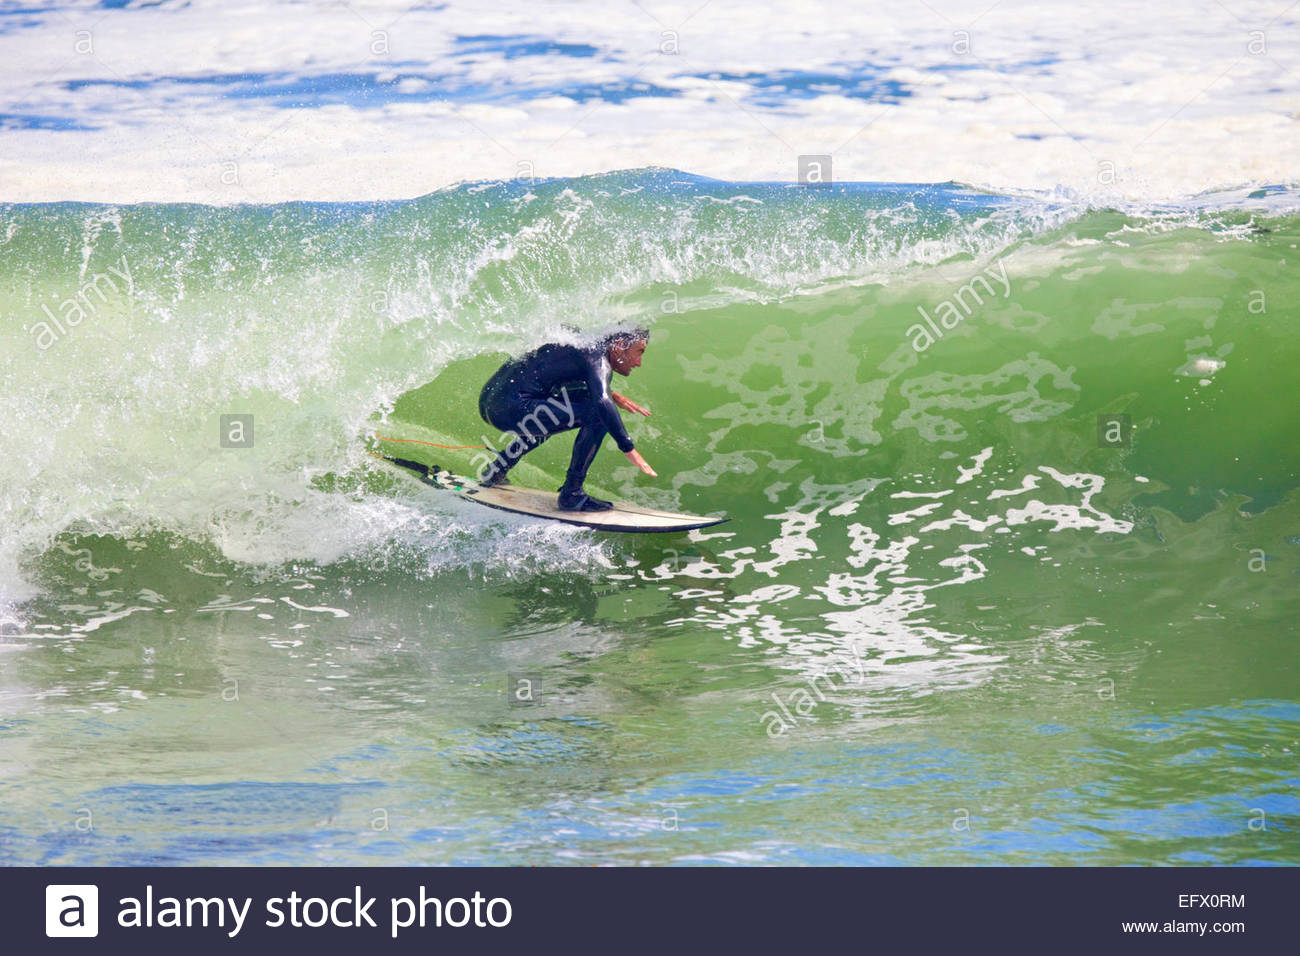 Surfer riding the curve of large wave - Stock Image